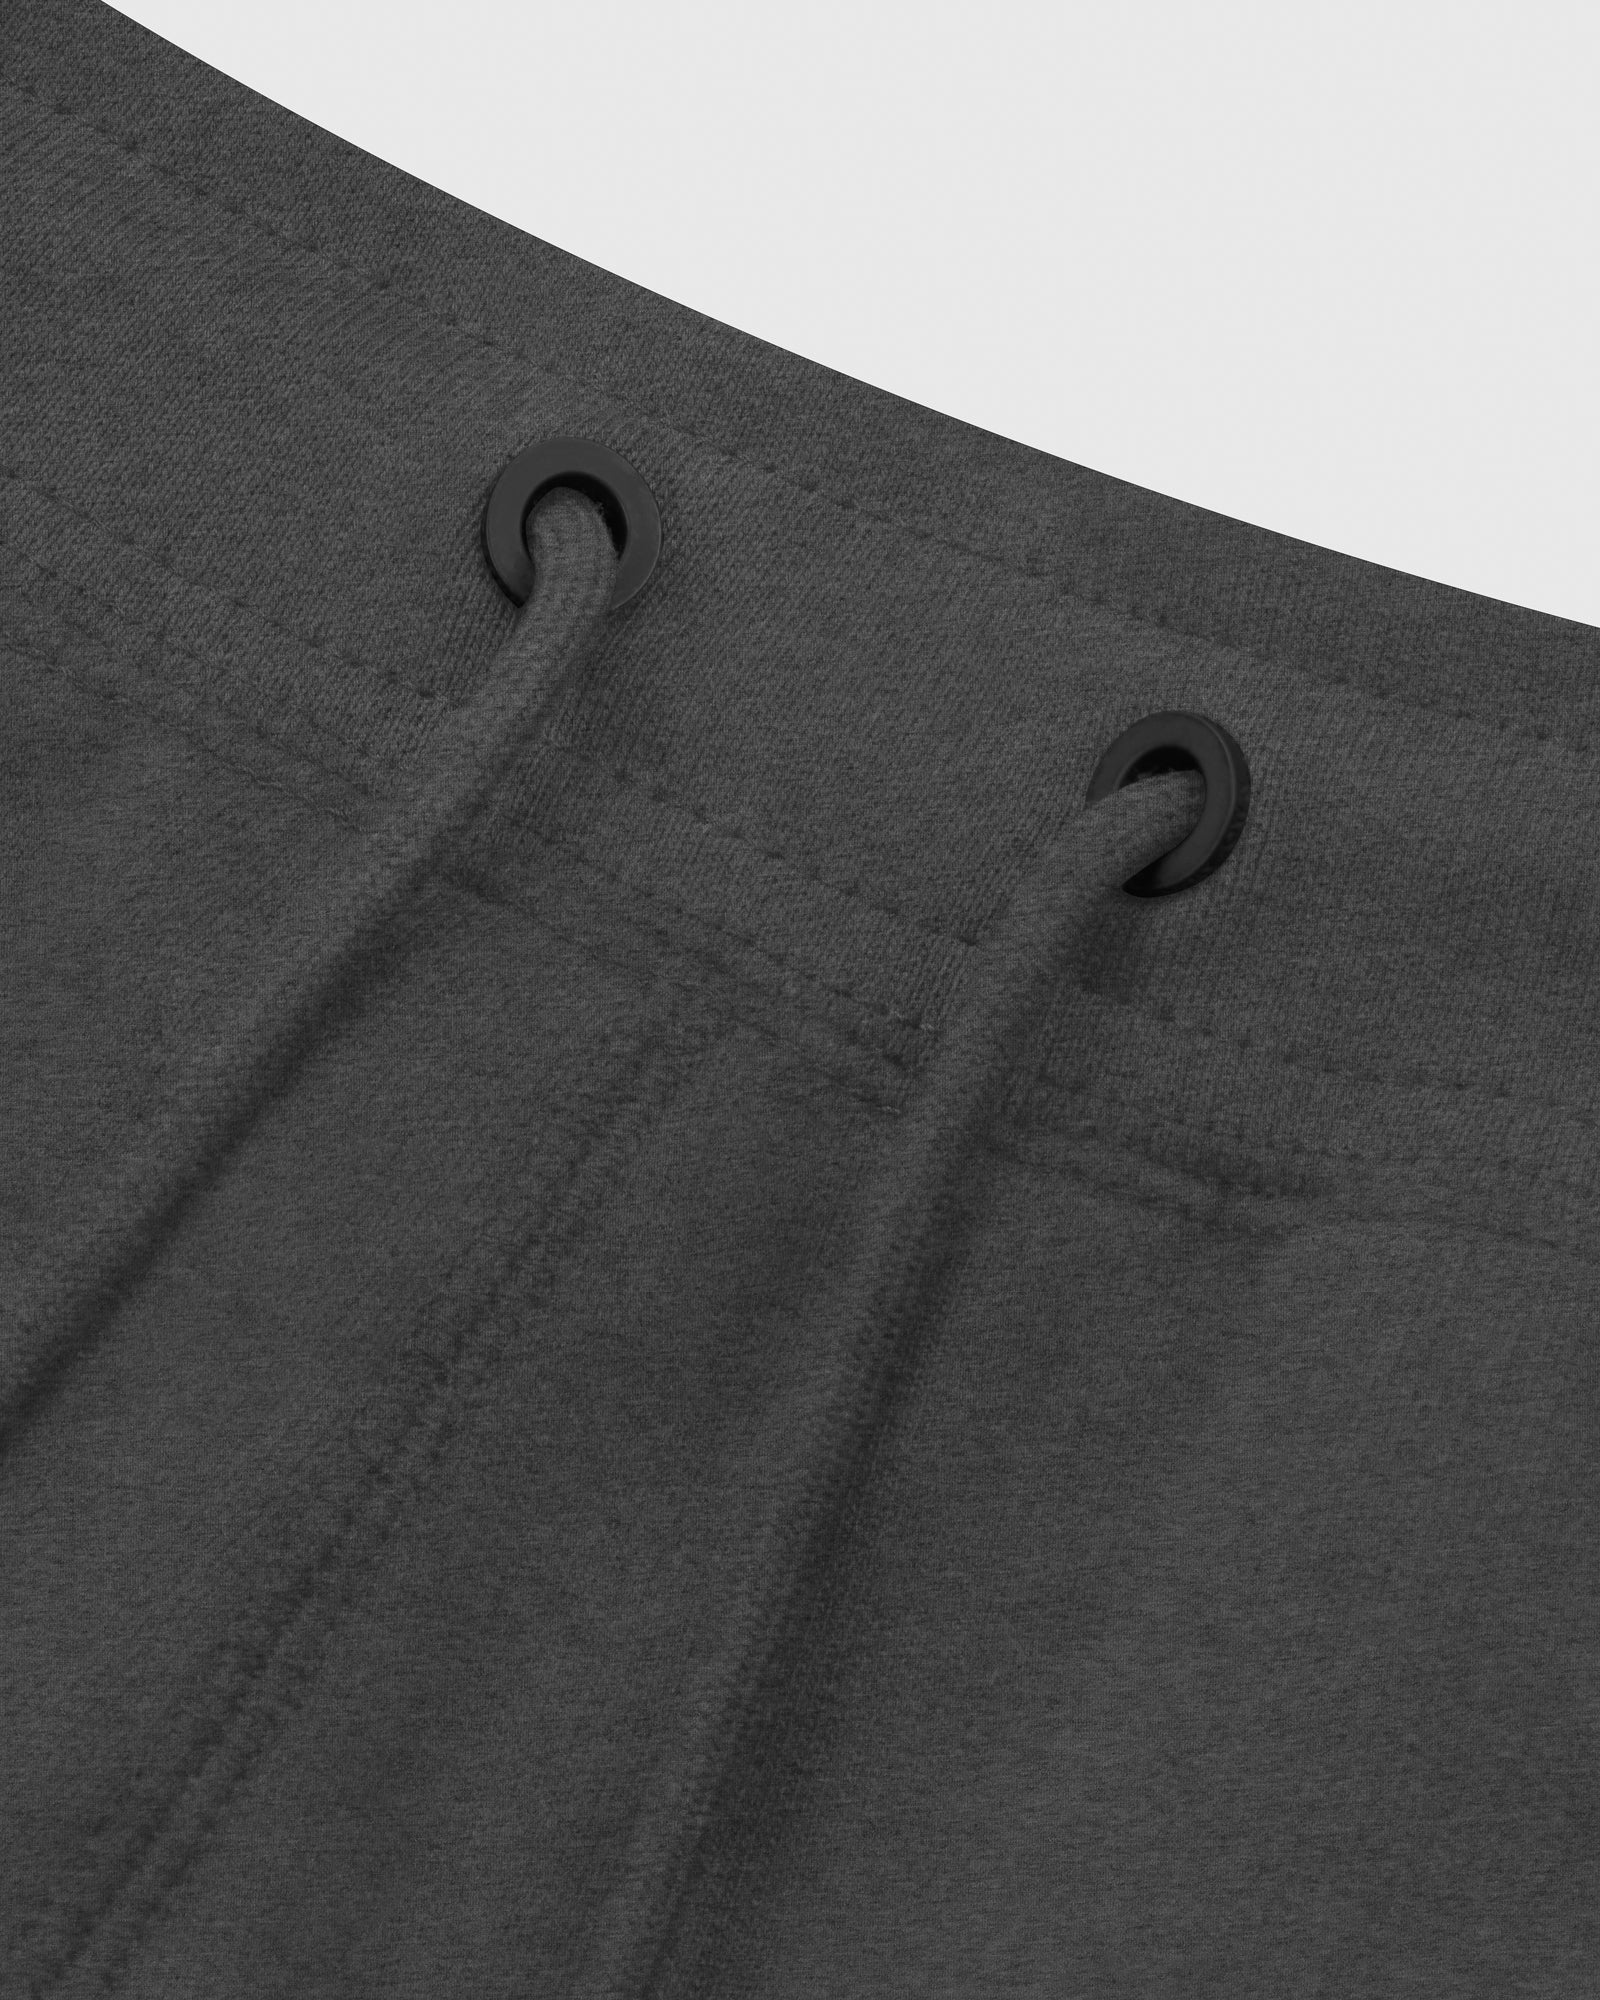 MID-WEIGHT FRENCH TERRY SWEATPANT - HEATHER CHARCOAL IMAGE #4